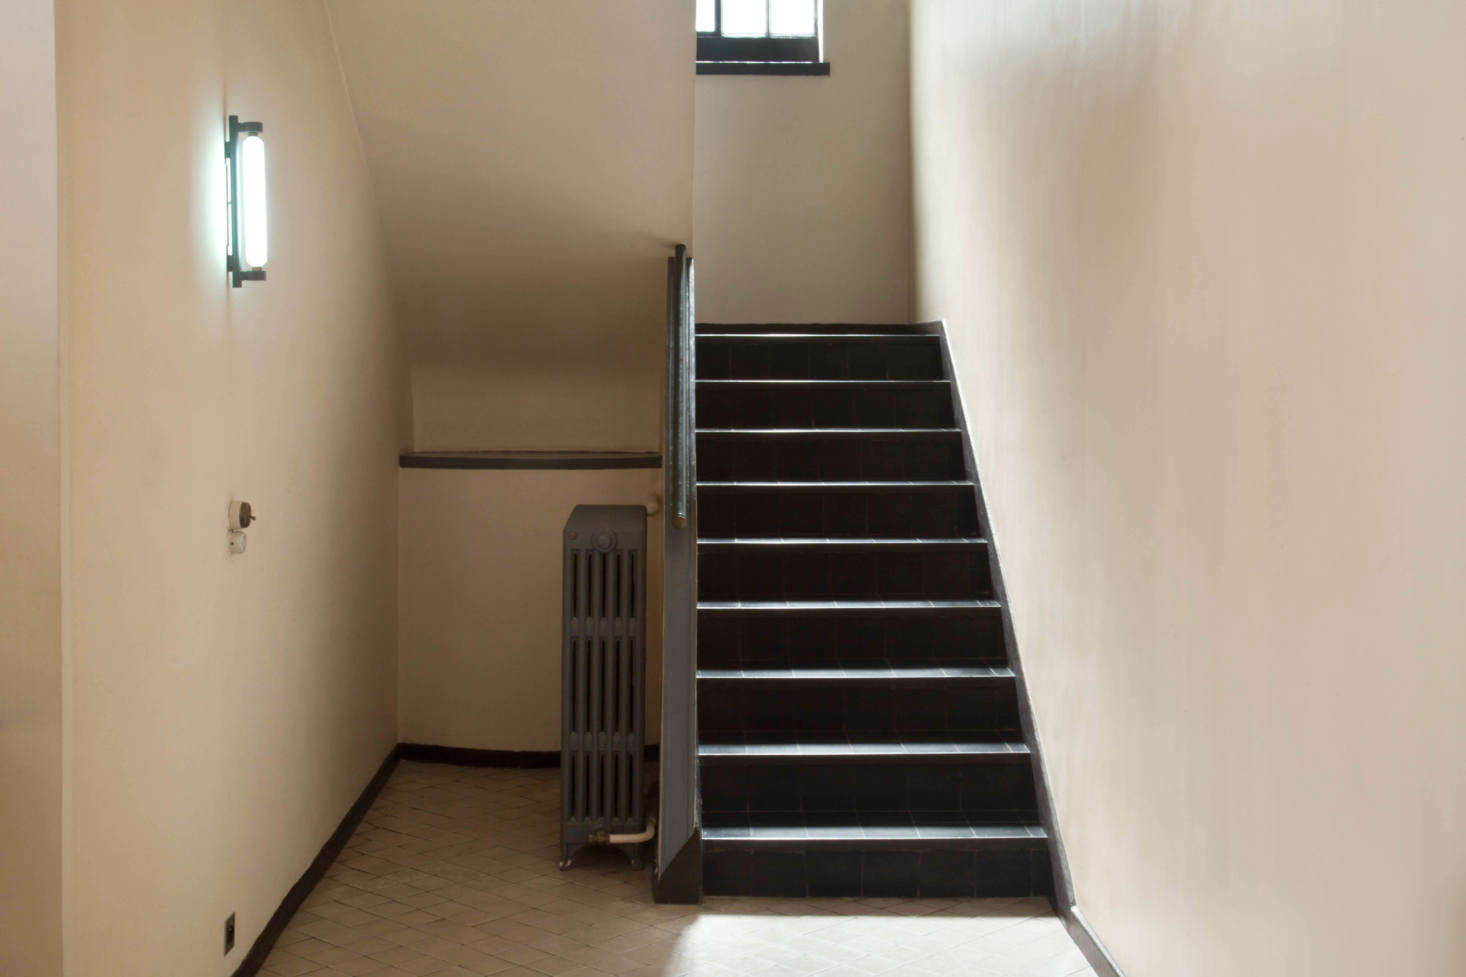 The foyer walls are painted Ivory and the staircase and radiator are Dark Gray. &#8